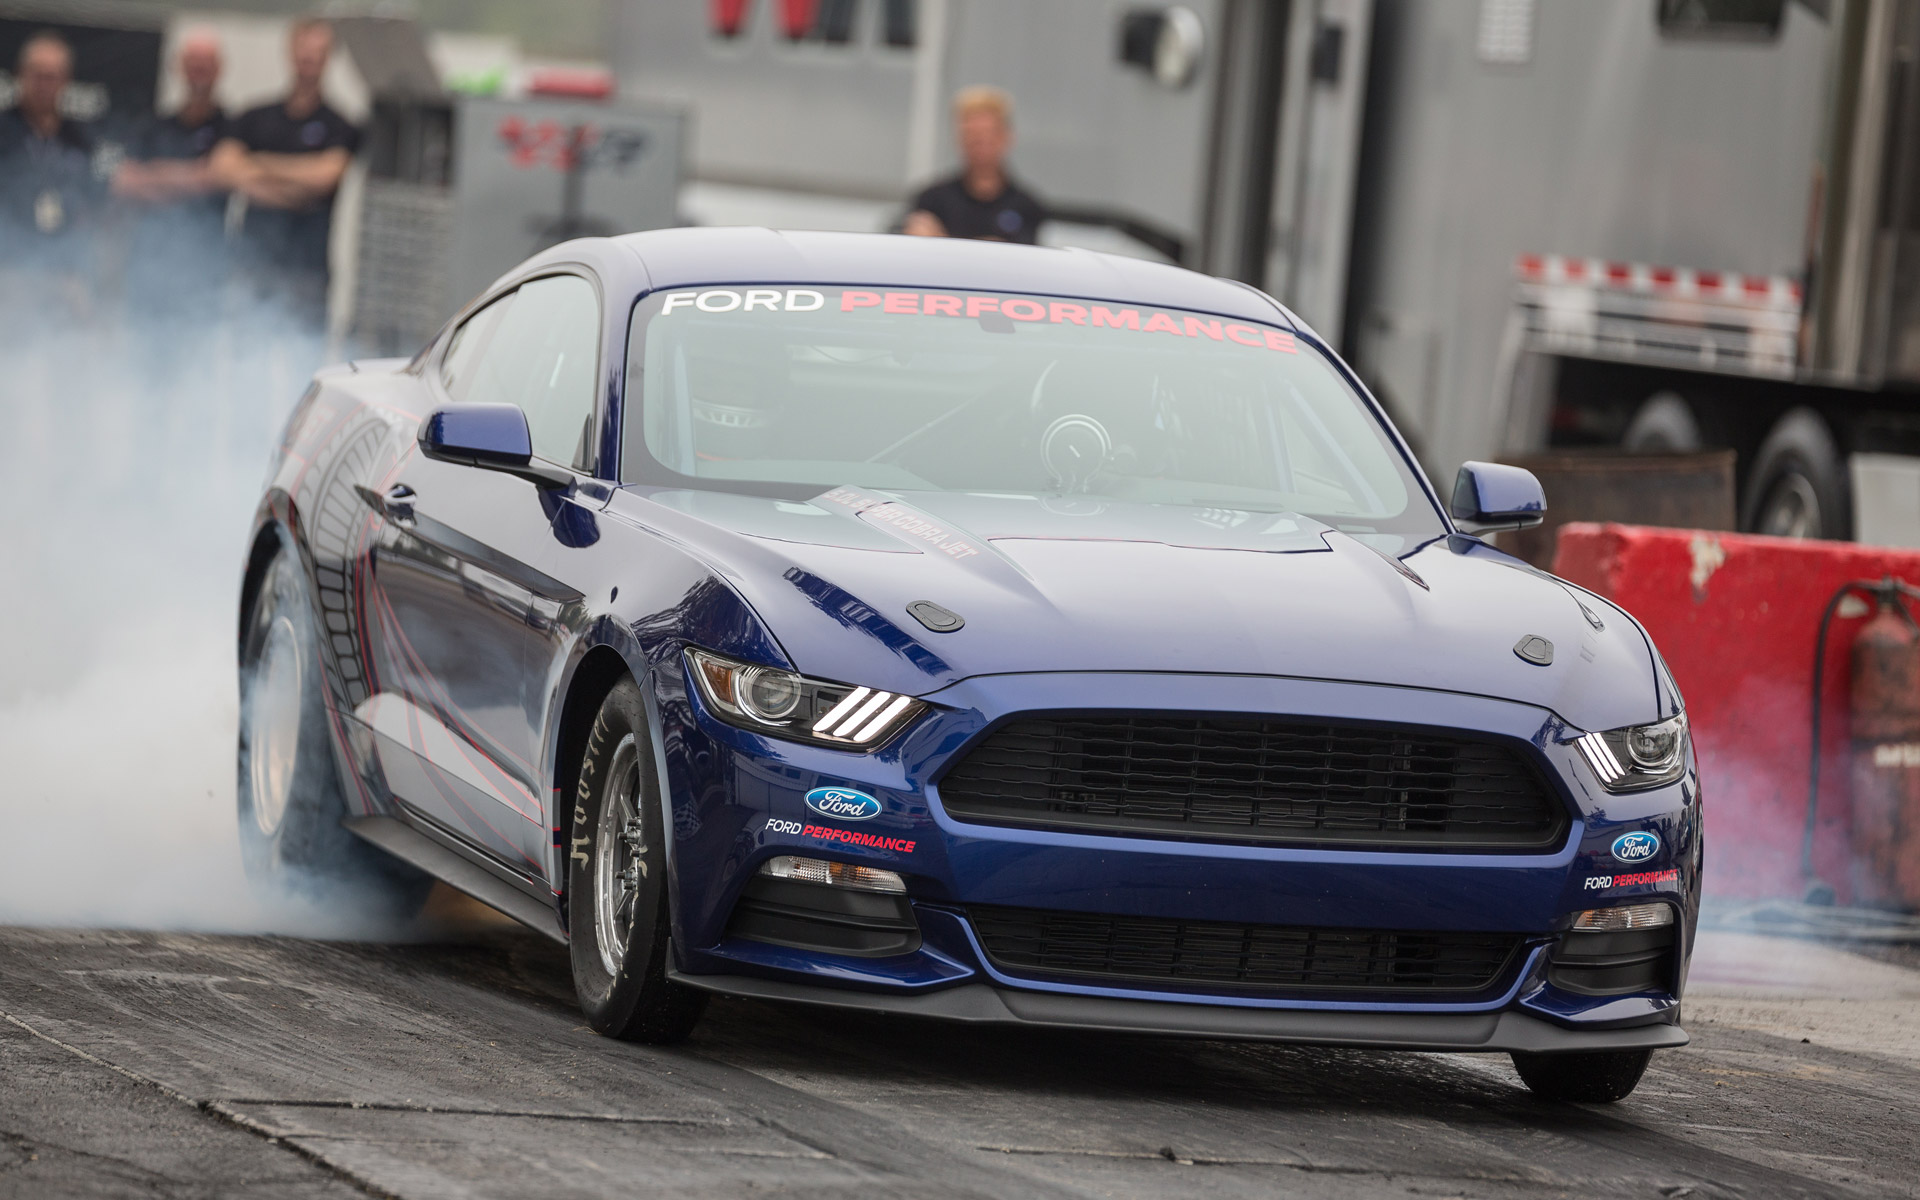 2016 Ford Mustang Cobra Jet Revealed, Runs 8.0-Second ...